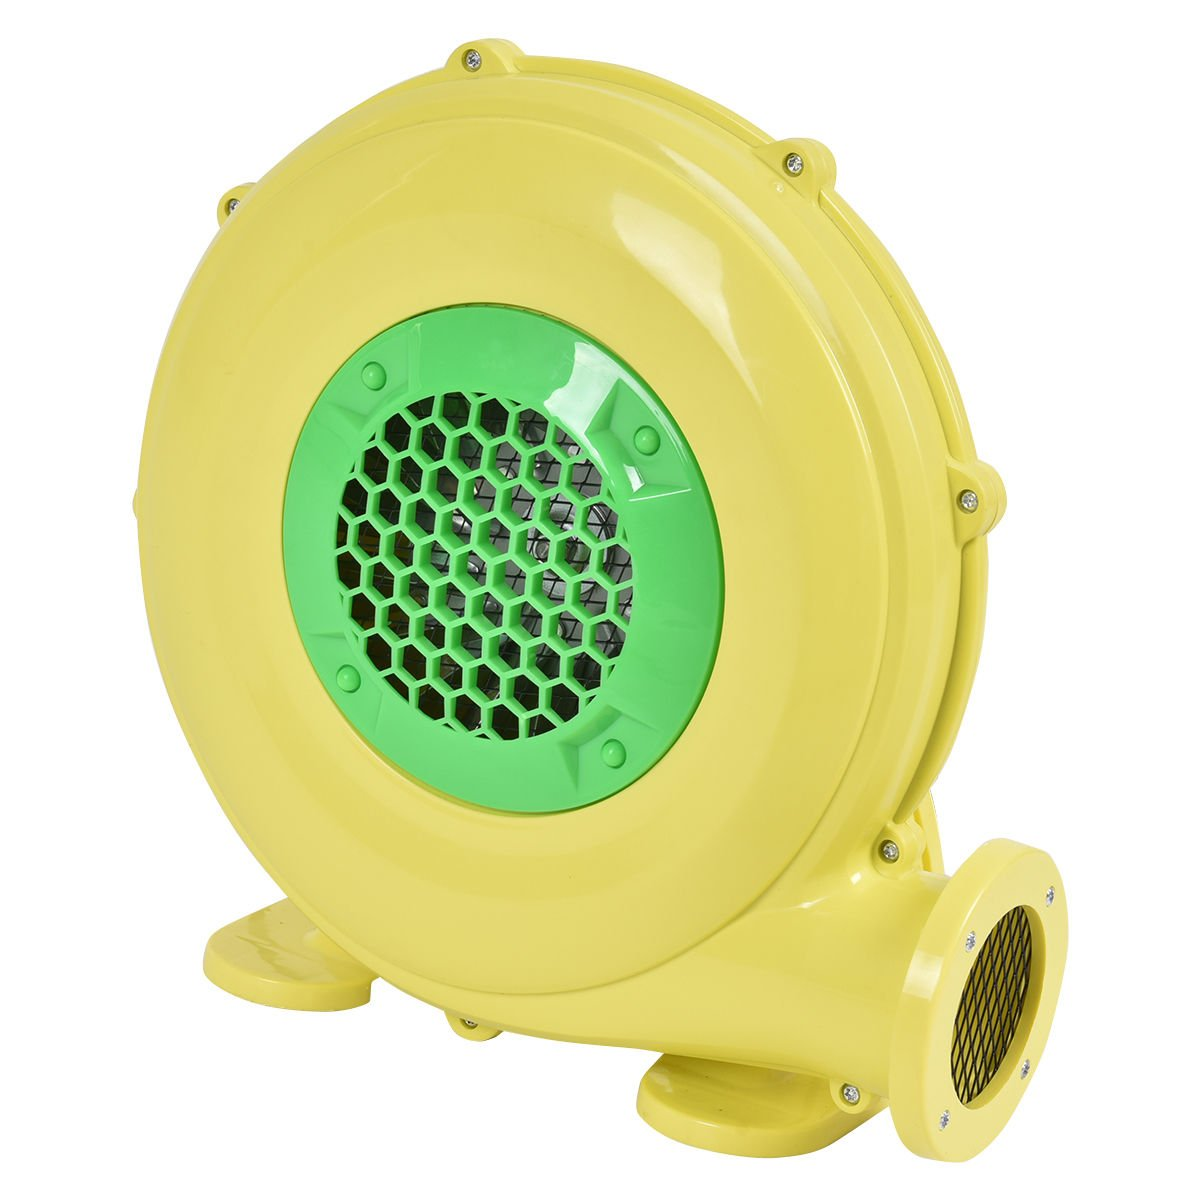 Costzon Air Blower, Pump Fan Commercial Inflatable Bouncer Blower, Perfect for Inflatable Bounce House, Jumper, Bouncy Castle (480 Watt 0.64HP) Yellow